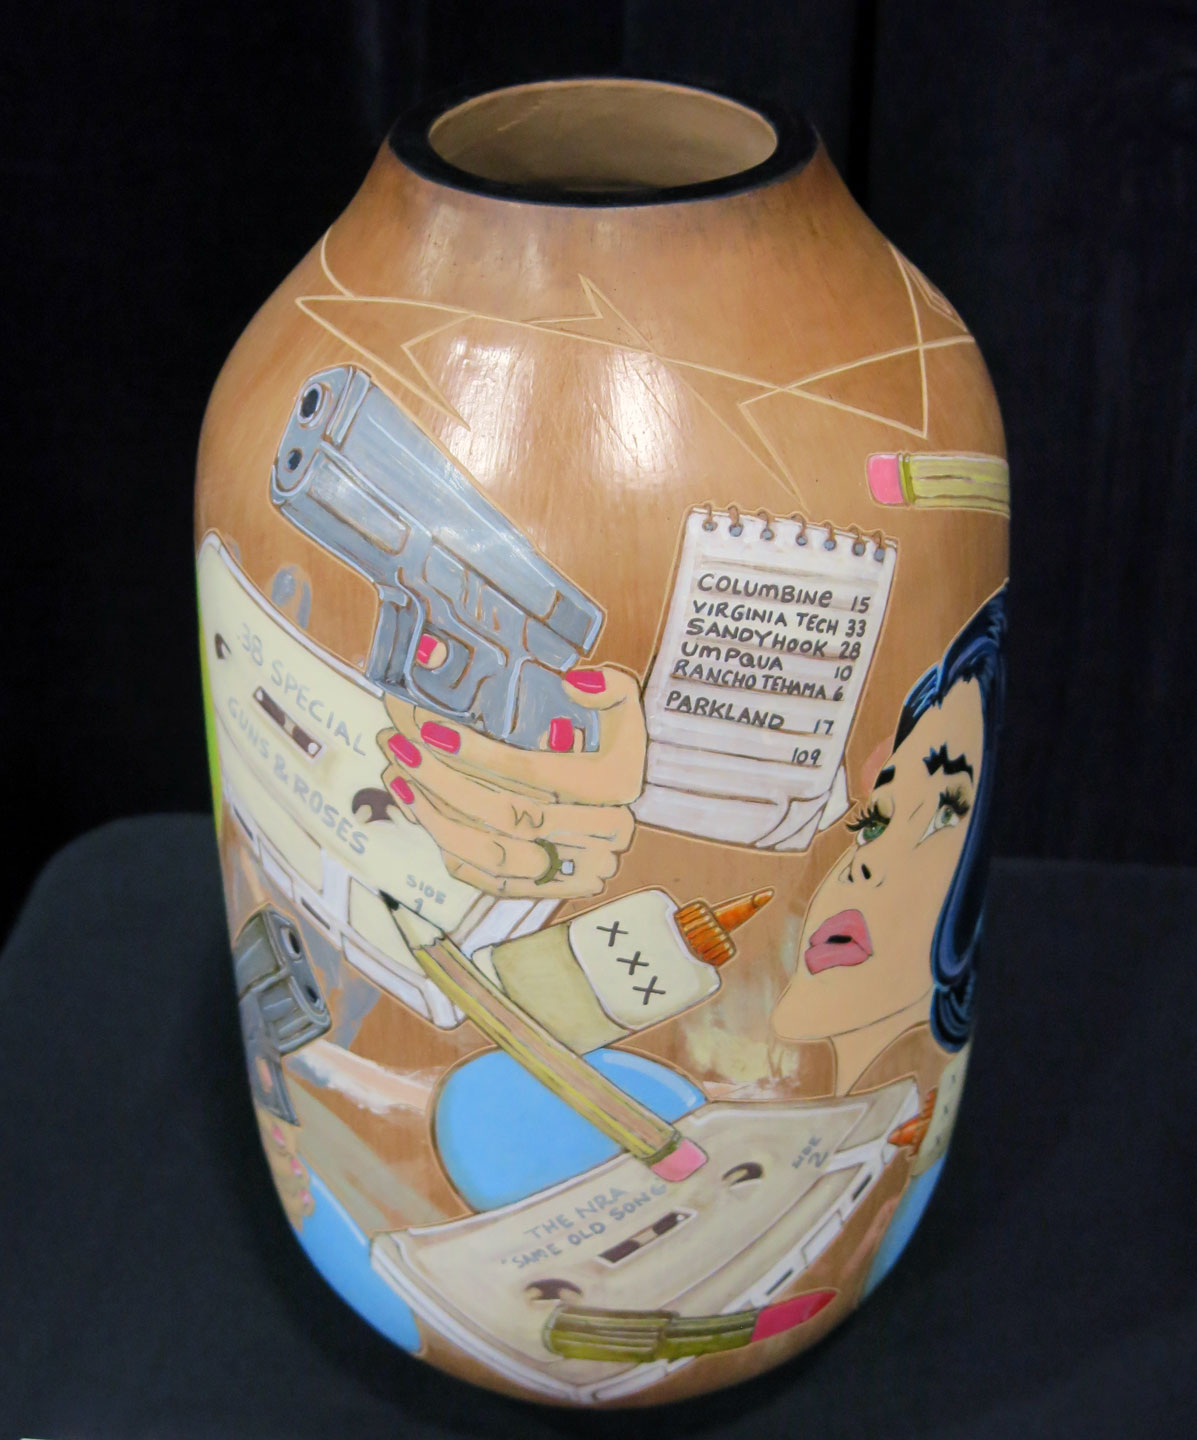 VESSEL by Susan L. Folwell (Santa Clara Pueblo), who won the Judge's Award in Pottery from Ellen Taubman.